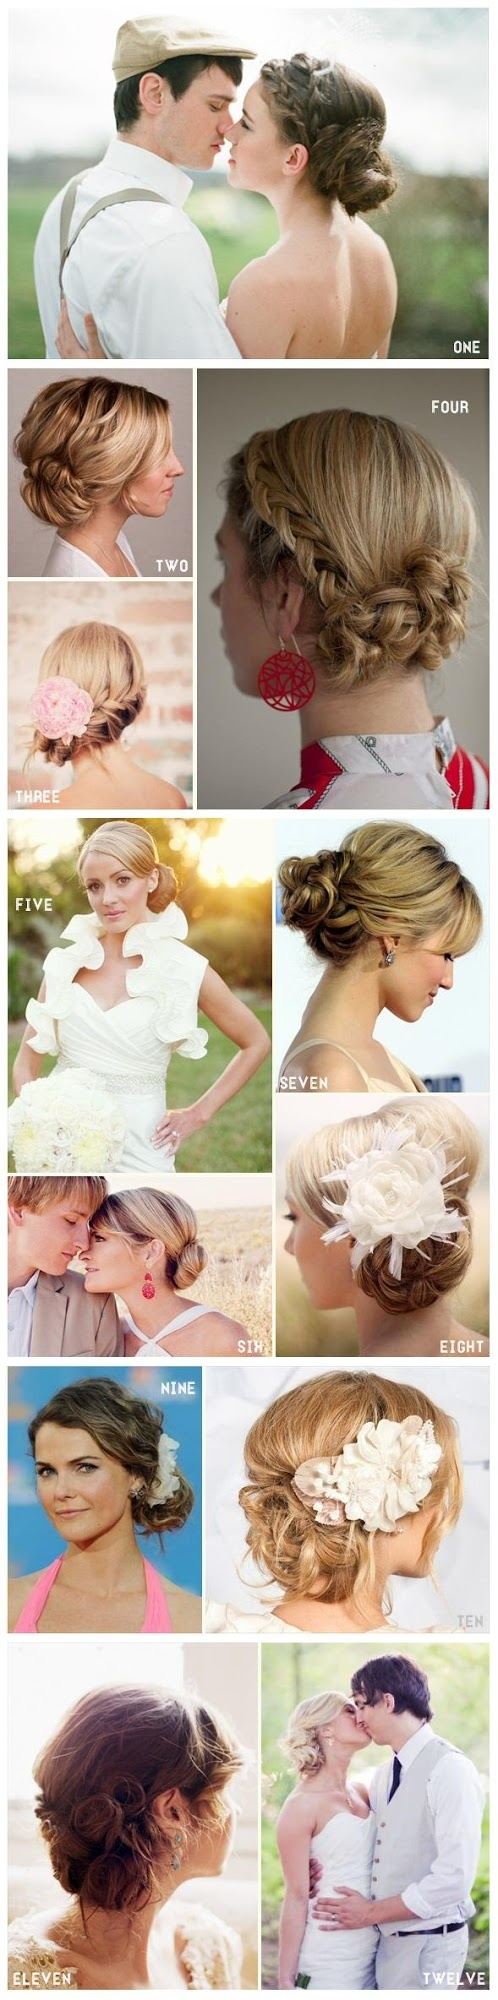 12 Beautiful Chignon Hairstyles | hairstyles tutorial